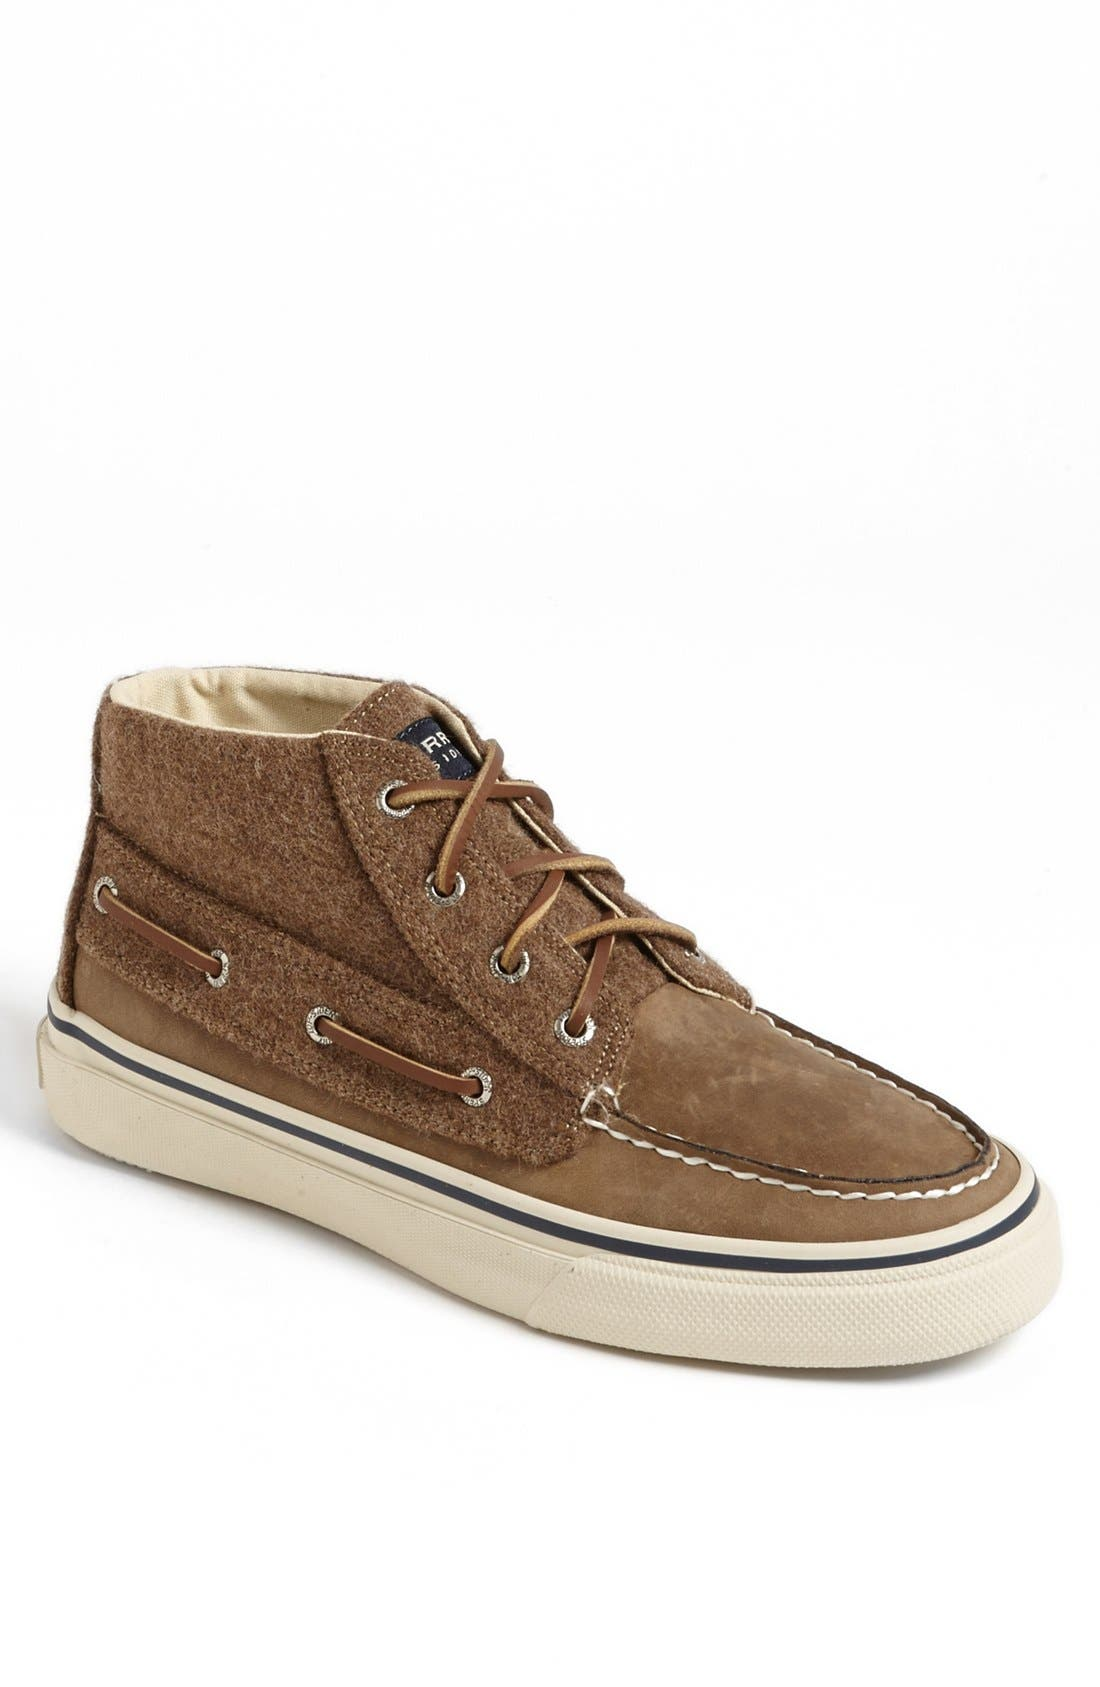 Main Image - Sperry Top-Sider® 'Bahama' Moc Toe Boot